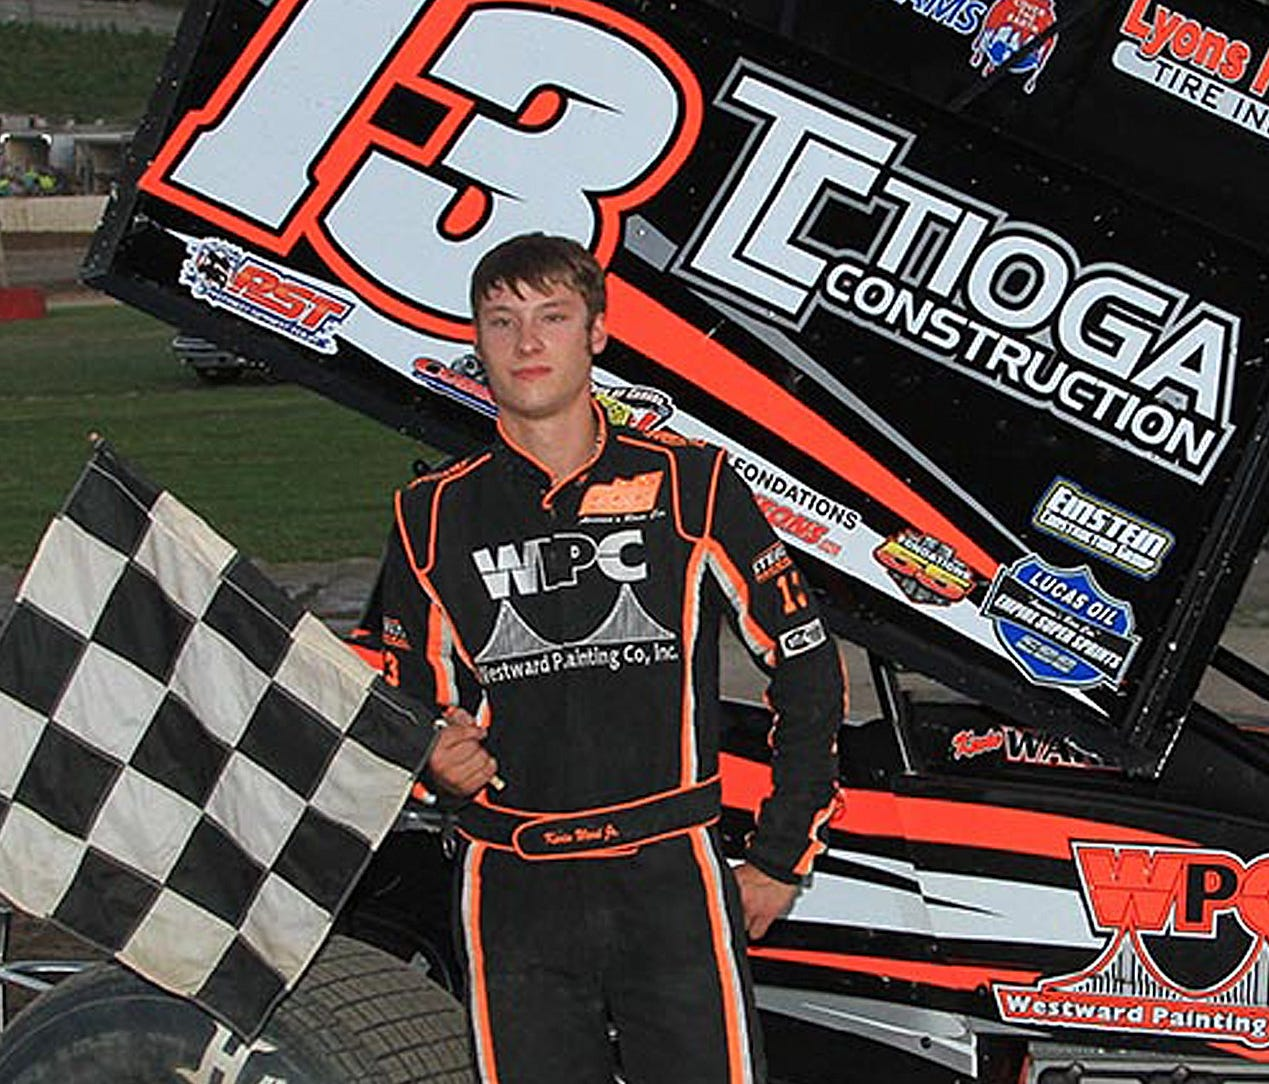 Sprint car driver Kevin Ward Jr. died after being struck at Canandaigua (N.Y.) Motorsports Park in August 2014.